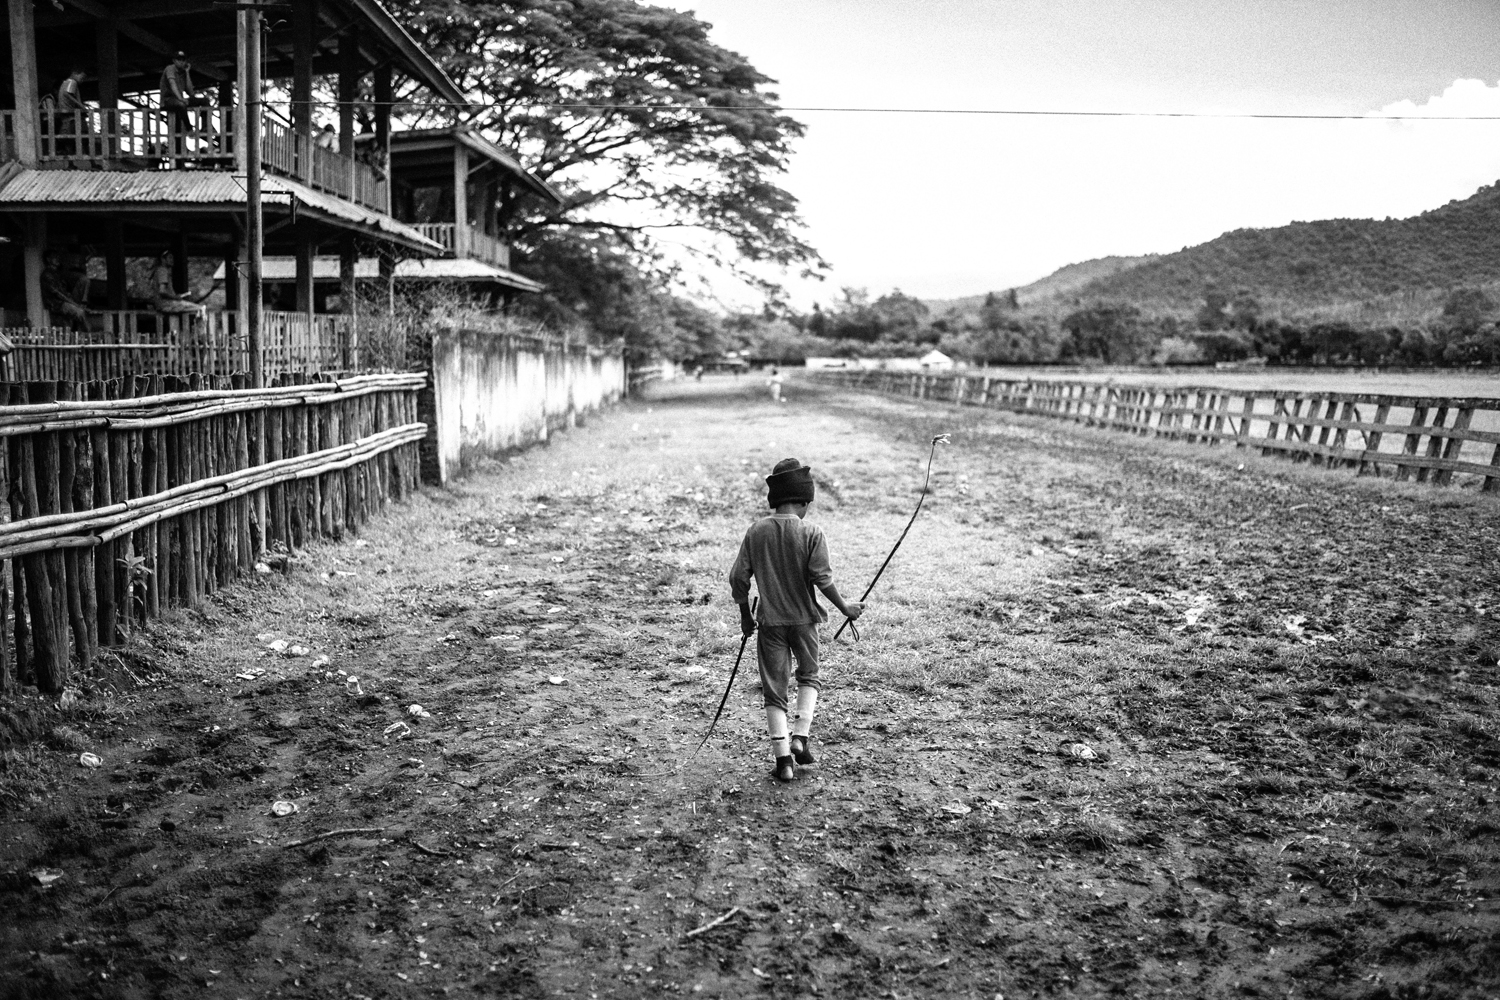 May 25, 2013. A jockey is seen before a race.